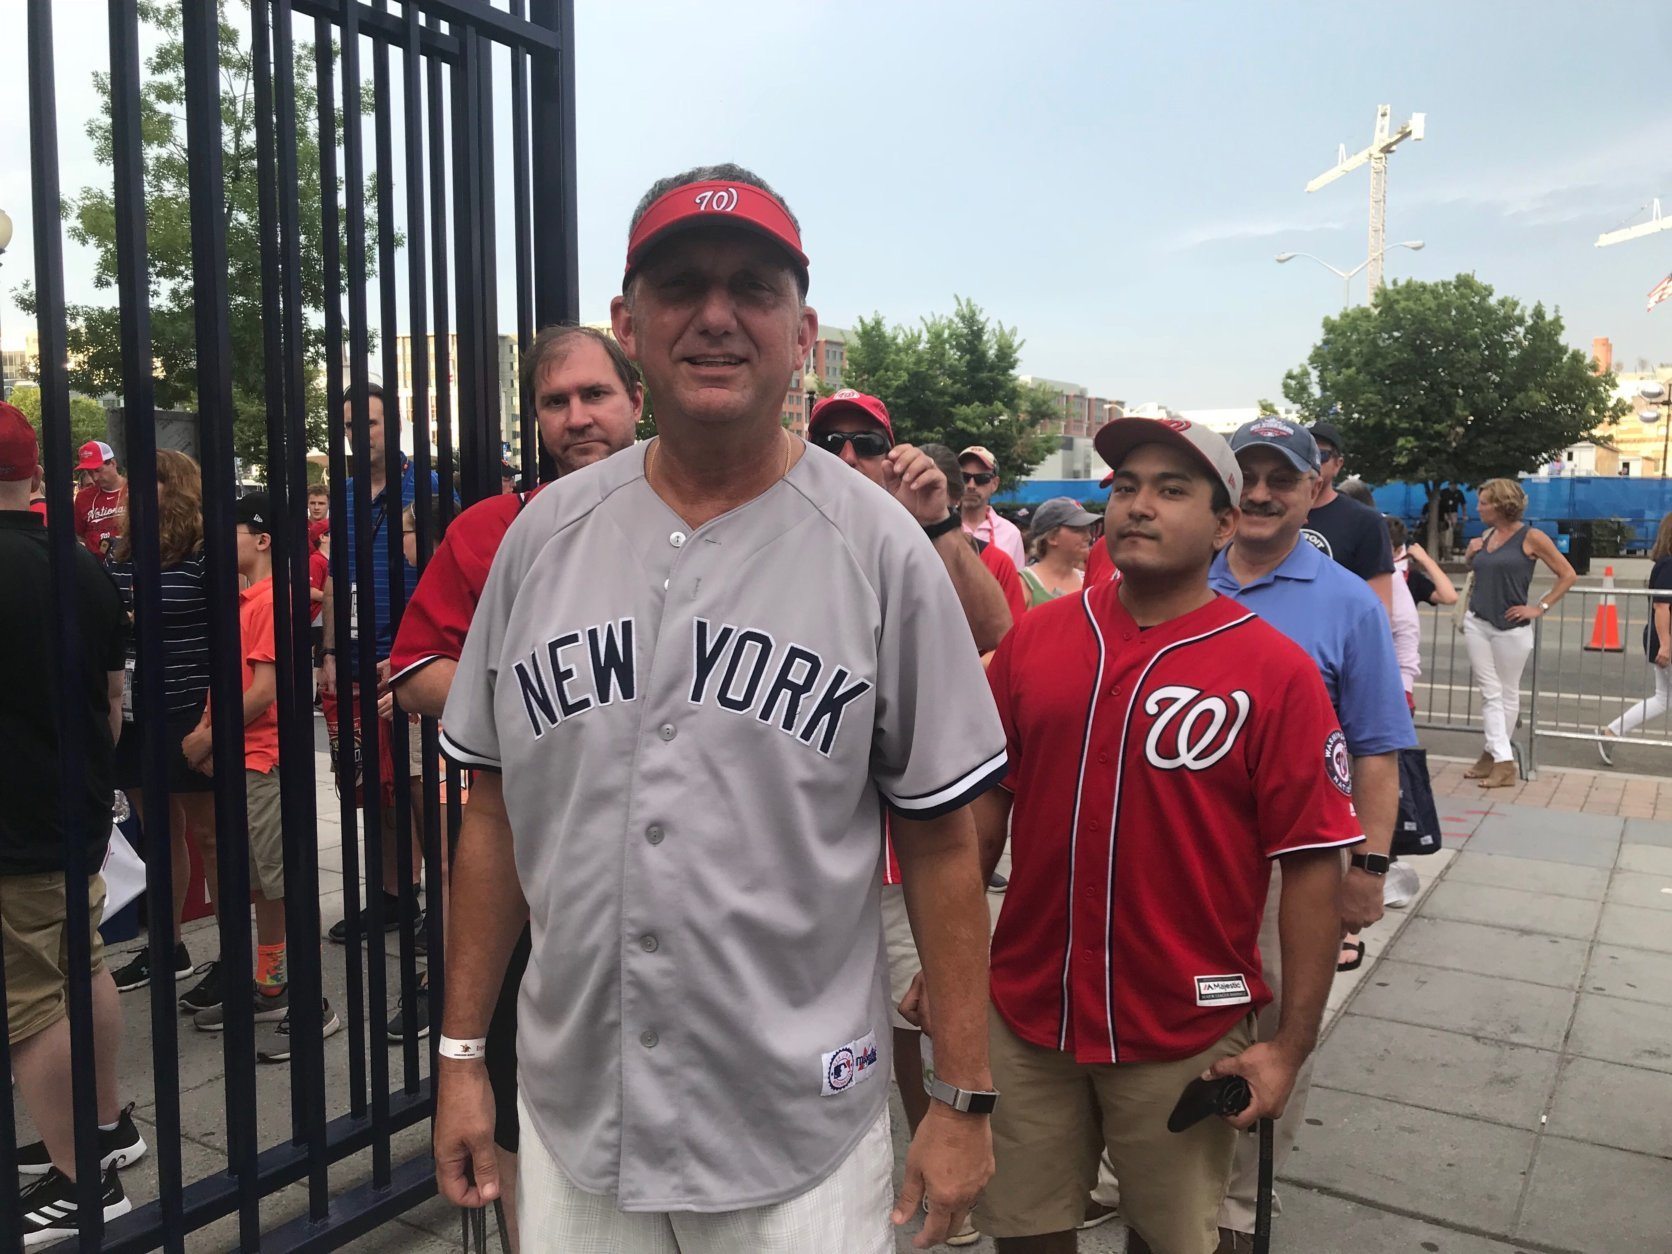 Fans line up to get into Nationals Park for the Home Run Derby on Monday, July 16, 2018 in Washington, D.C. (WTOP/Dick Uliano)